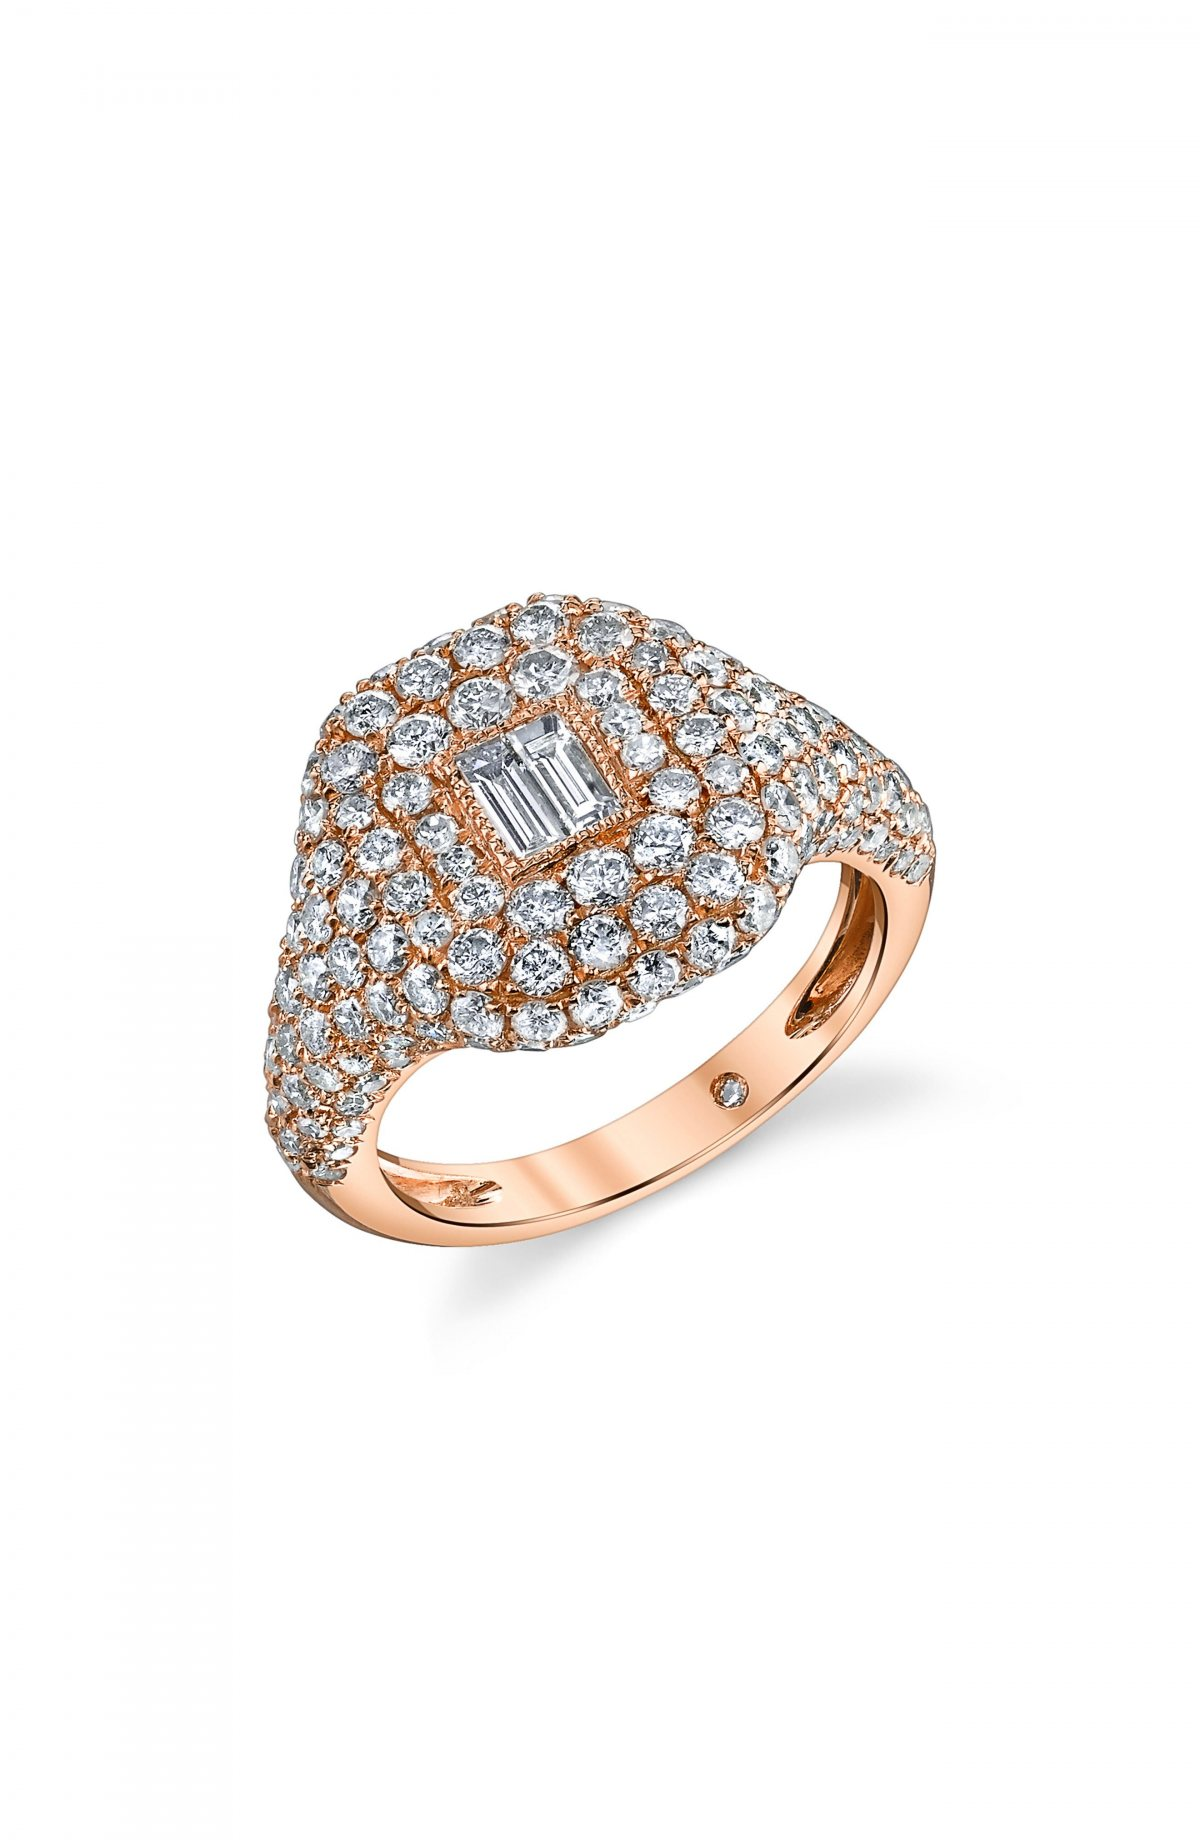 Pavé Diamond Pinky Ring by Shay, available on nordstrom.com for $5040 Bella Hadid Jewellery Exact Product